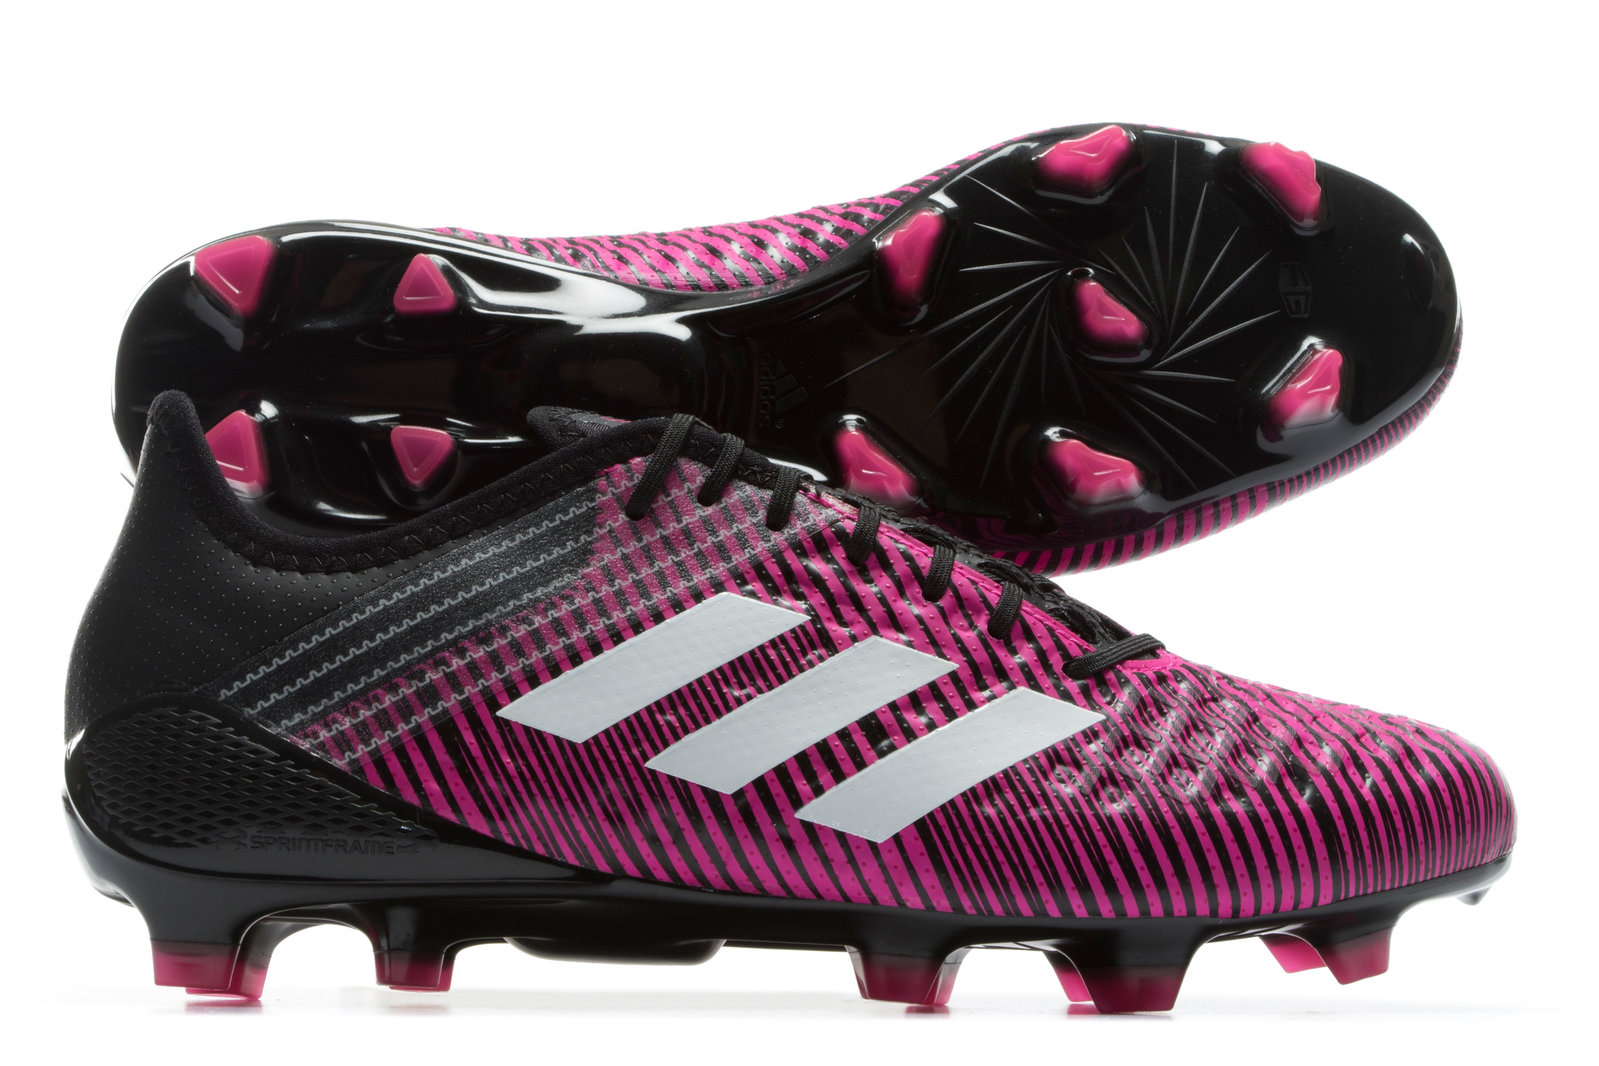 acf2ad164e9f87 adidas Mens Predator Malice Control FG Rugby Boots Sports Shoes Studs Pink